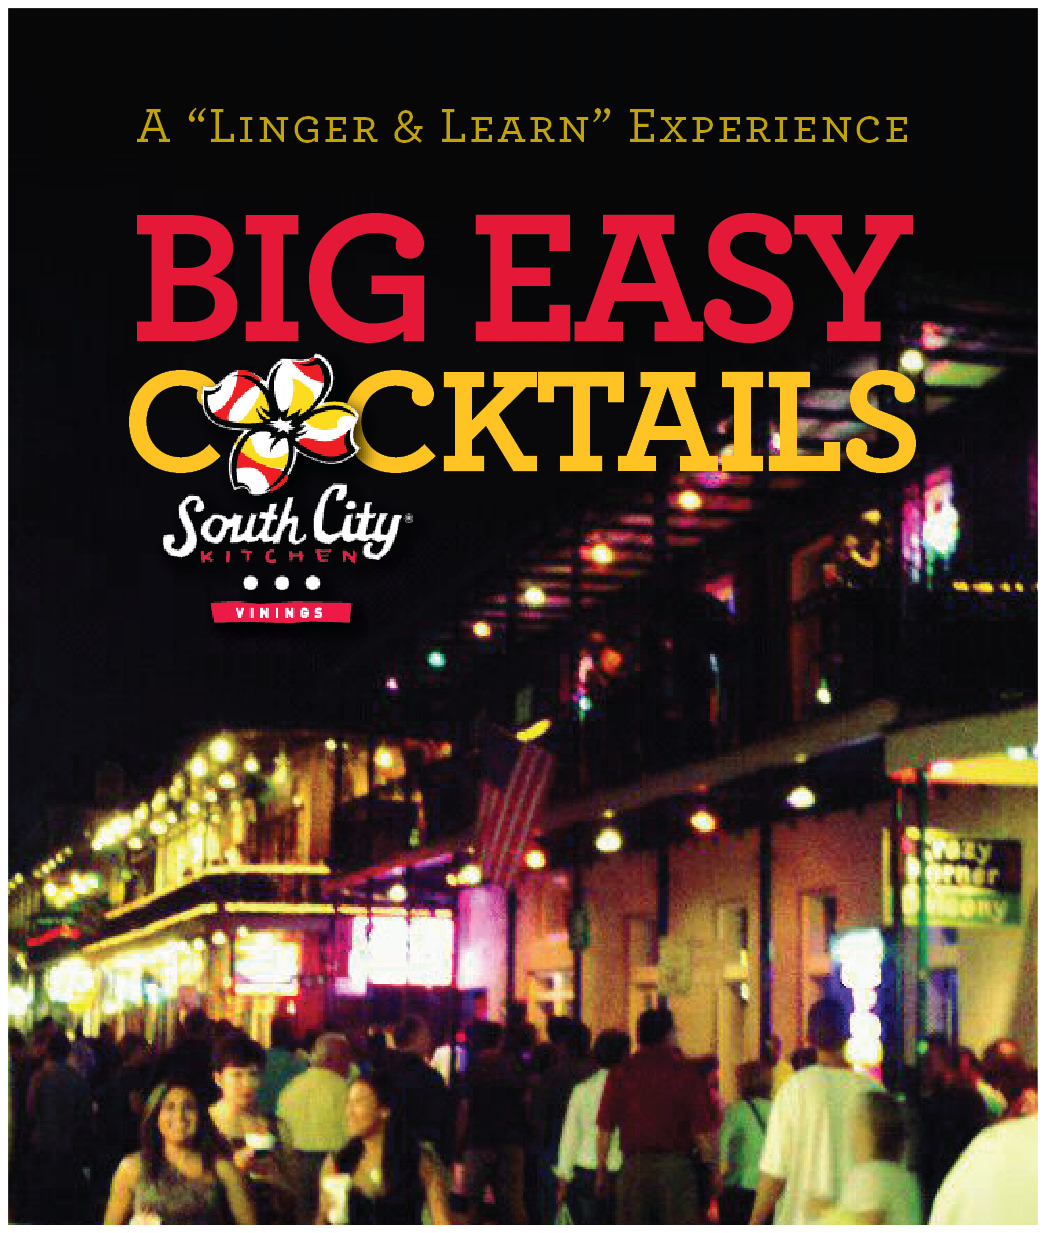 Linger & Learn – Big Easy Cocktails